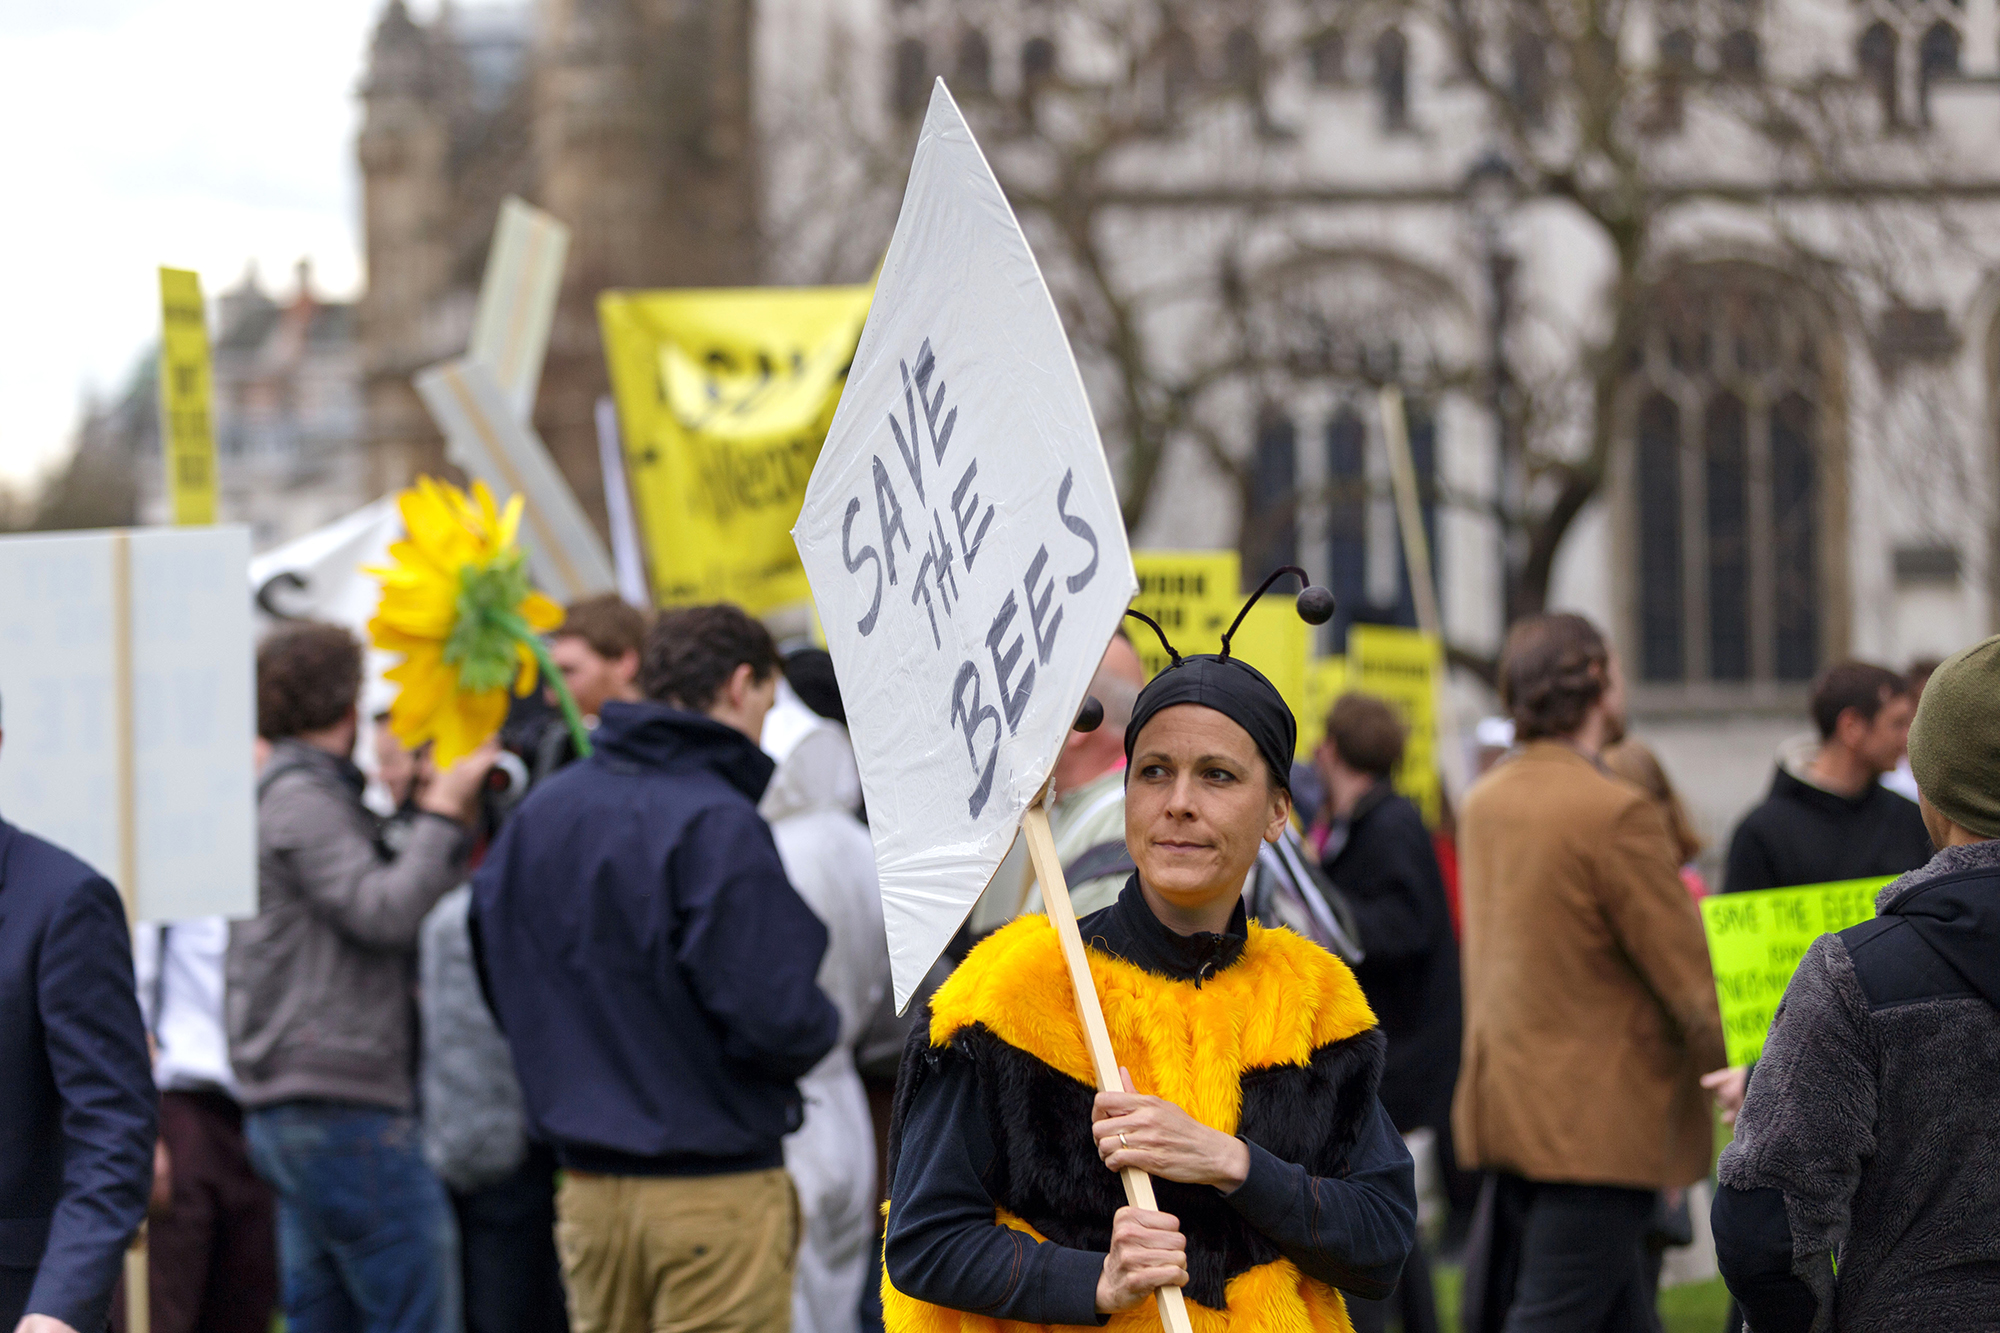 Beekeepers have protested against the use of potentially harmful pesticides. Photo: Alamy